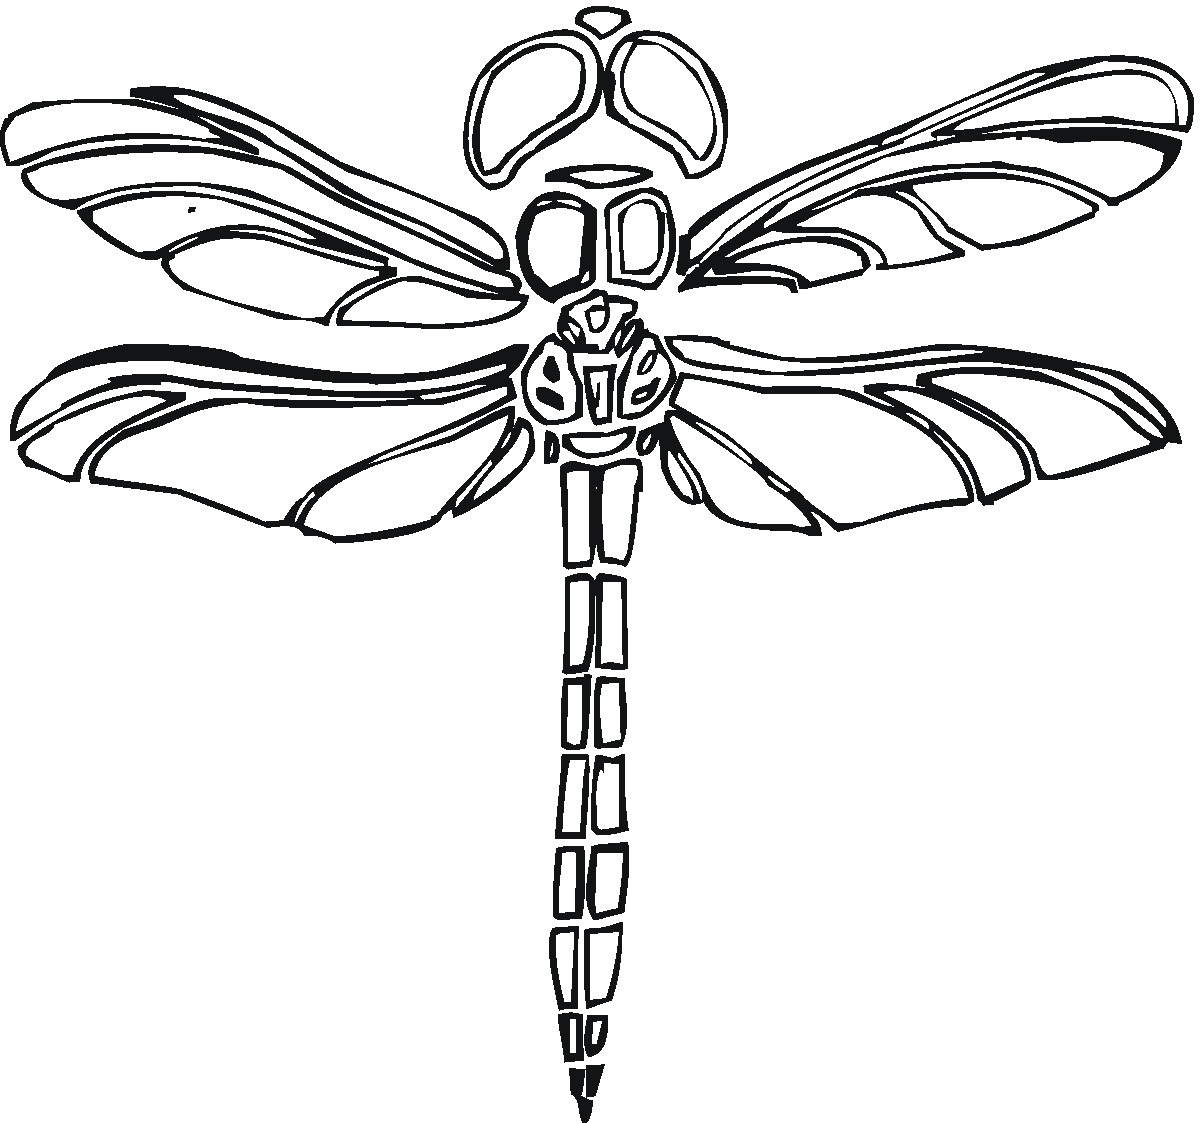 Printable Dragonfly Coloring Pages | Coloringme - Free Printable Pictures Of Dragonflies